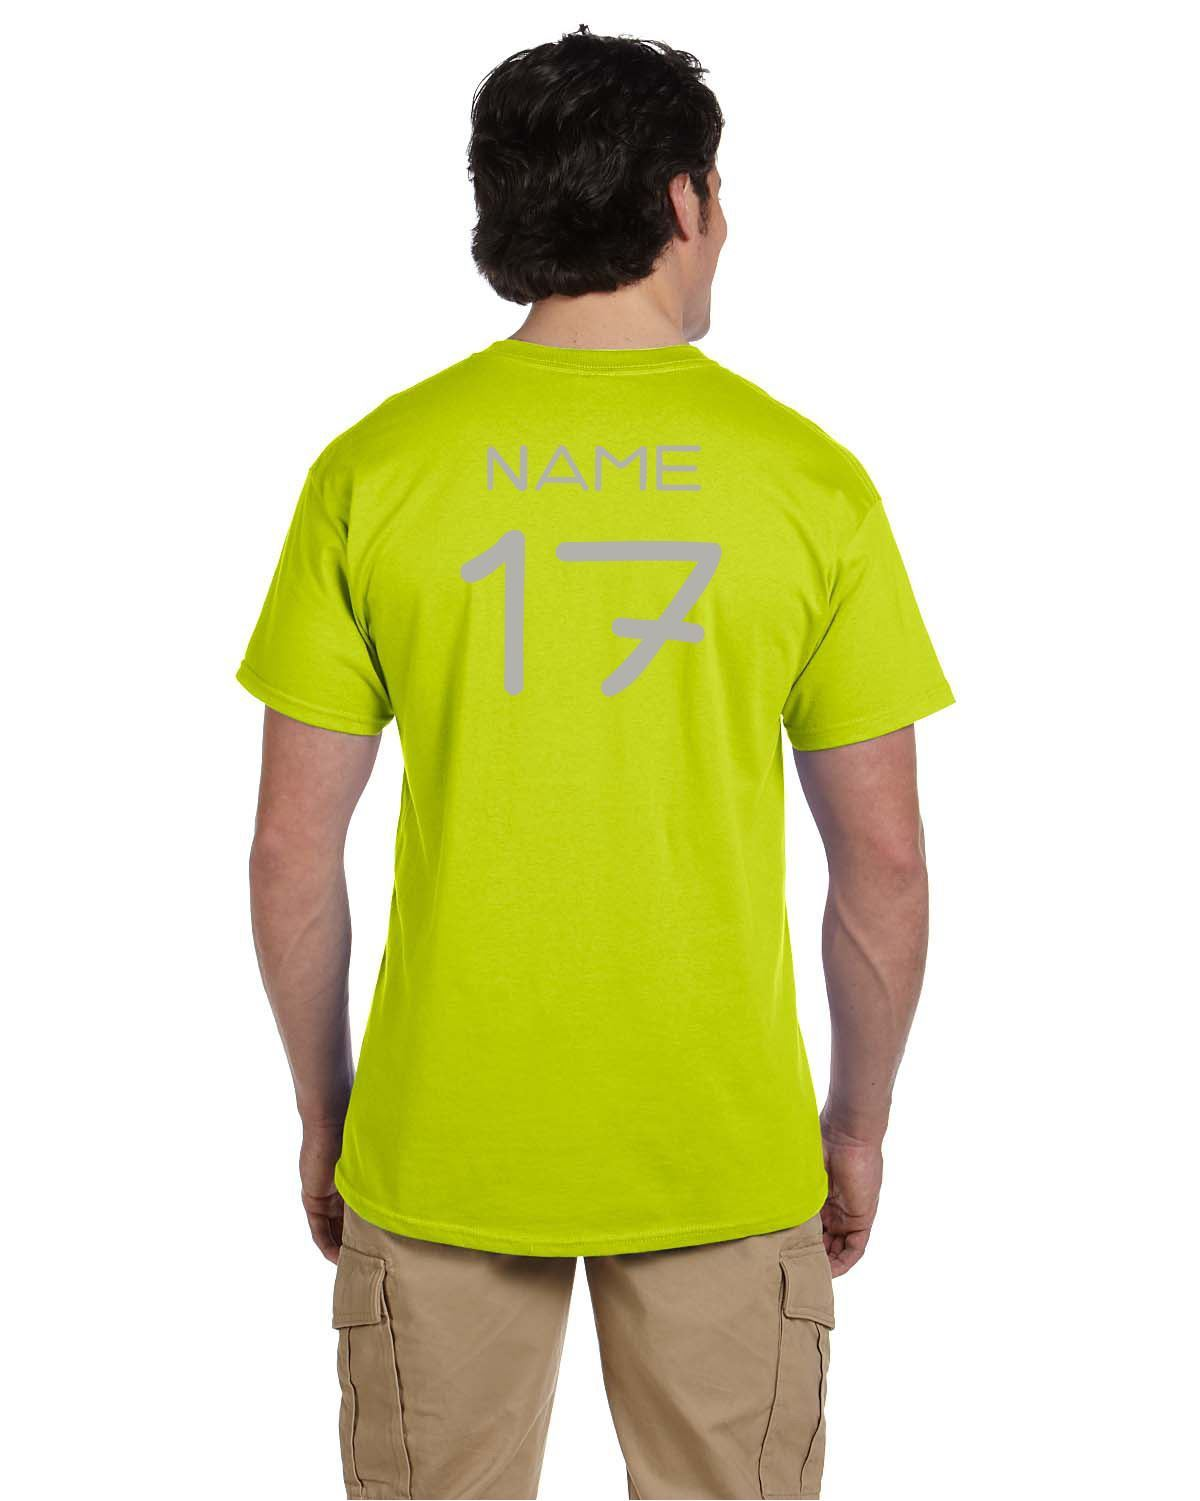 Galaxy Cup Short Sleeve Tee - Safety Green Goal Kick Soccer Youth Large